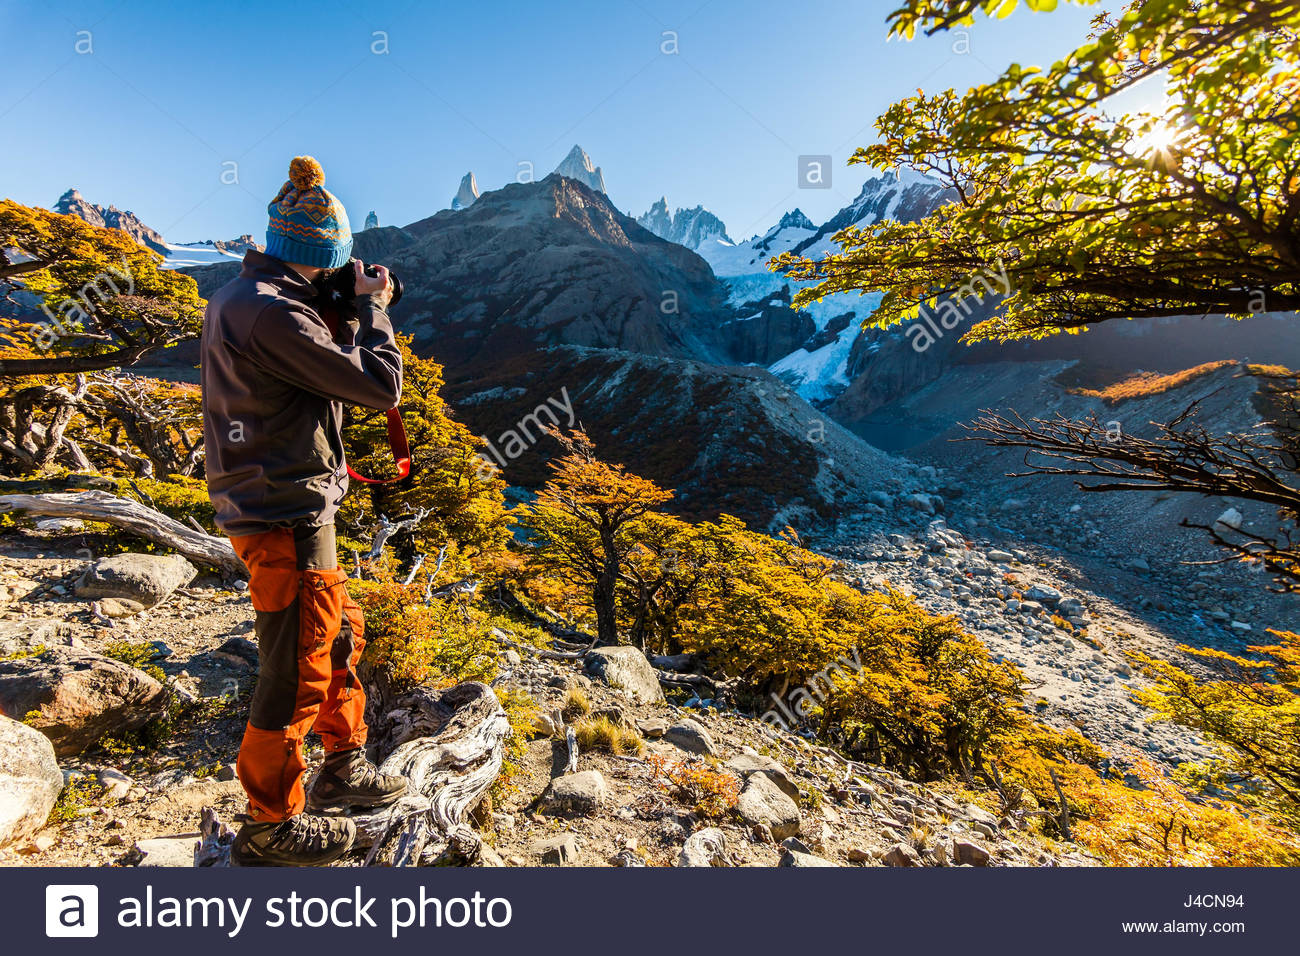 Bearded tourist man in the background of a mountain landscape - Stock Image